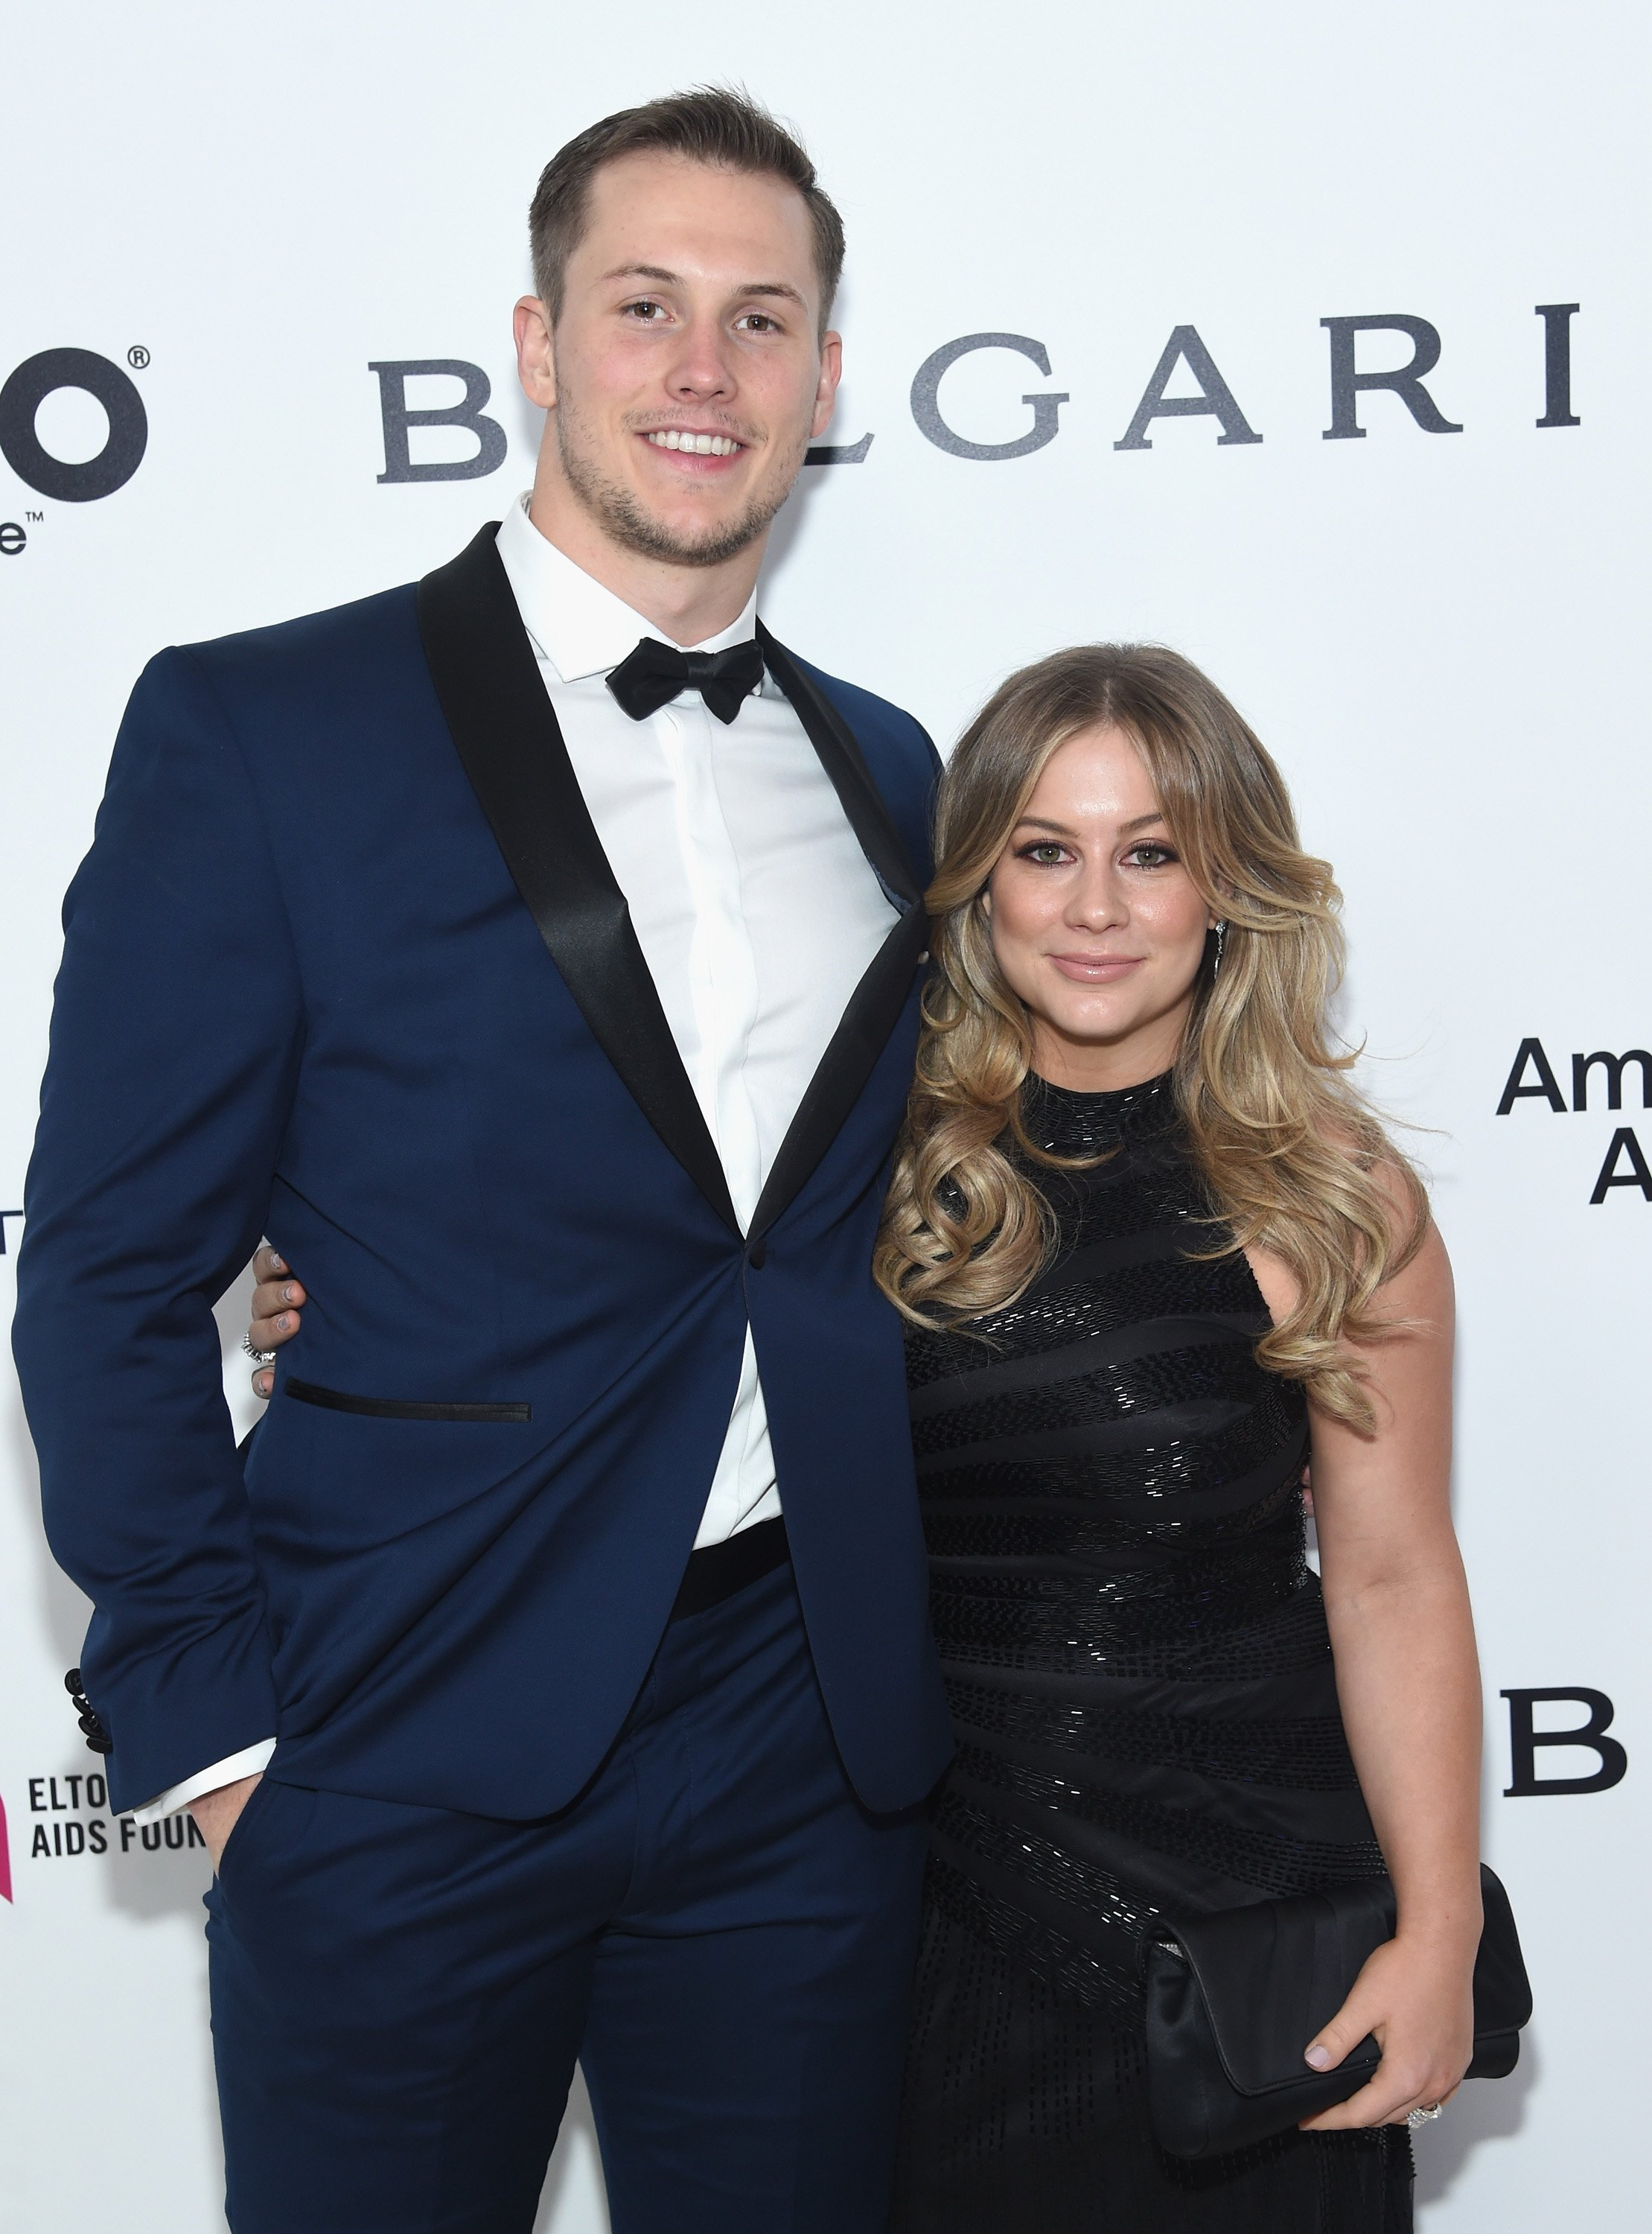 Olympic Gymnast Shawn Johnson and Andrew East attend the 25th Annual Elton John AIDS Foundation's Academy Awards Viewing Party at The City of West Hollywood Park on February 26, 2017 in West Hollywood, California.   Source: Getty Images